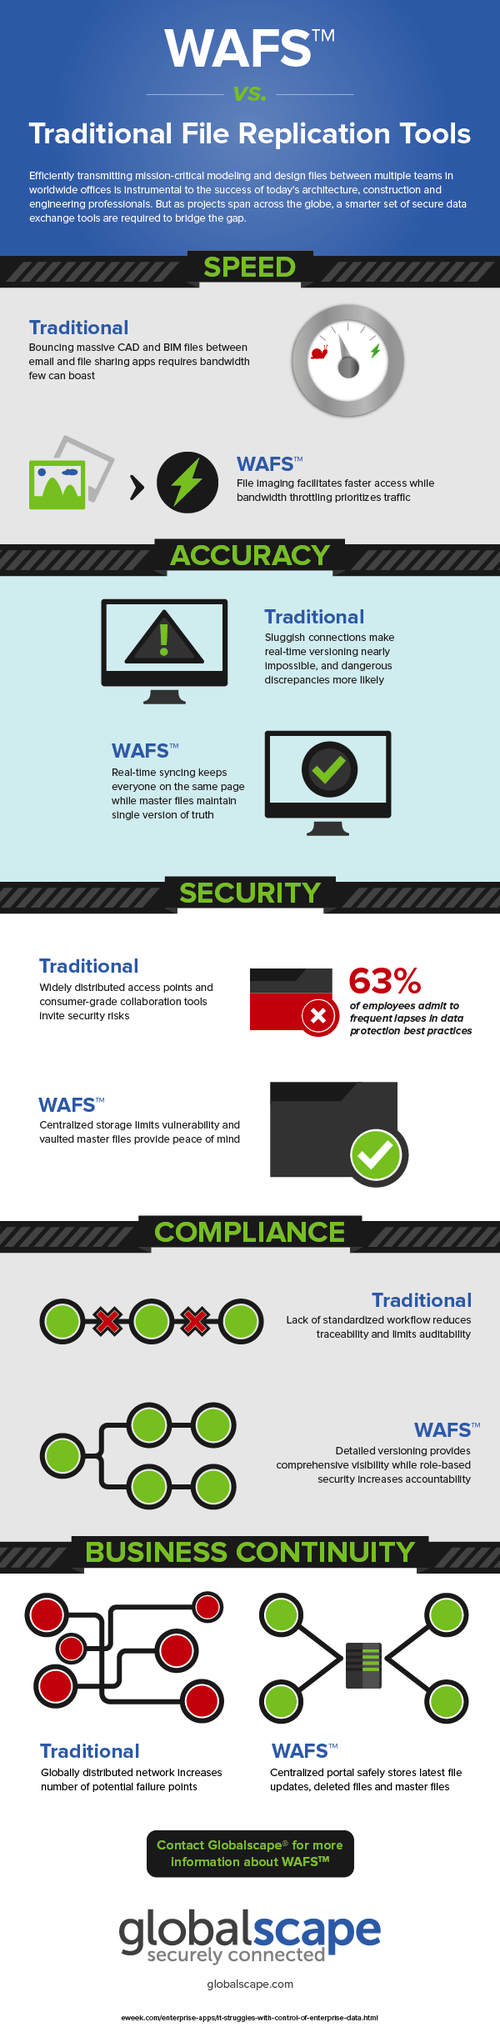 Infographic: WAFS vs. Traditional File Replication Tools